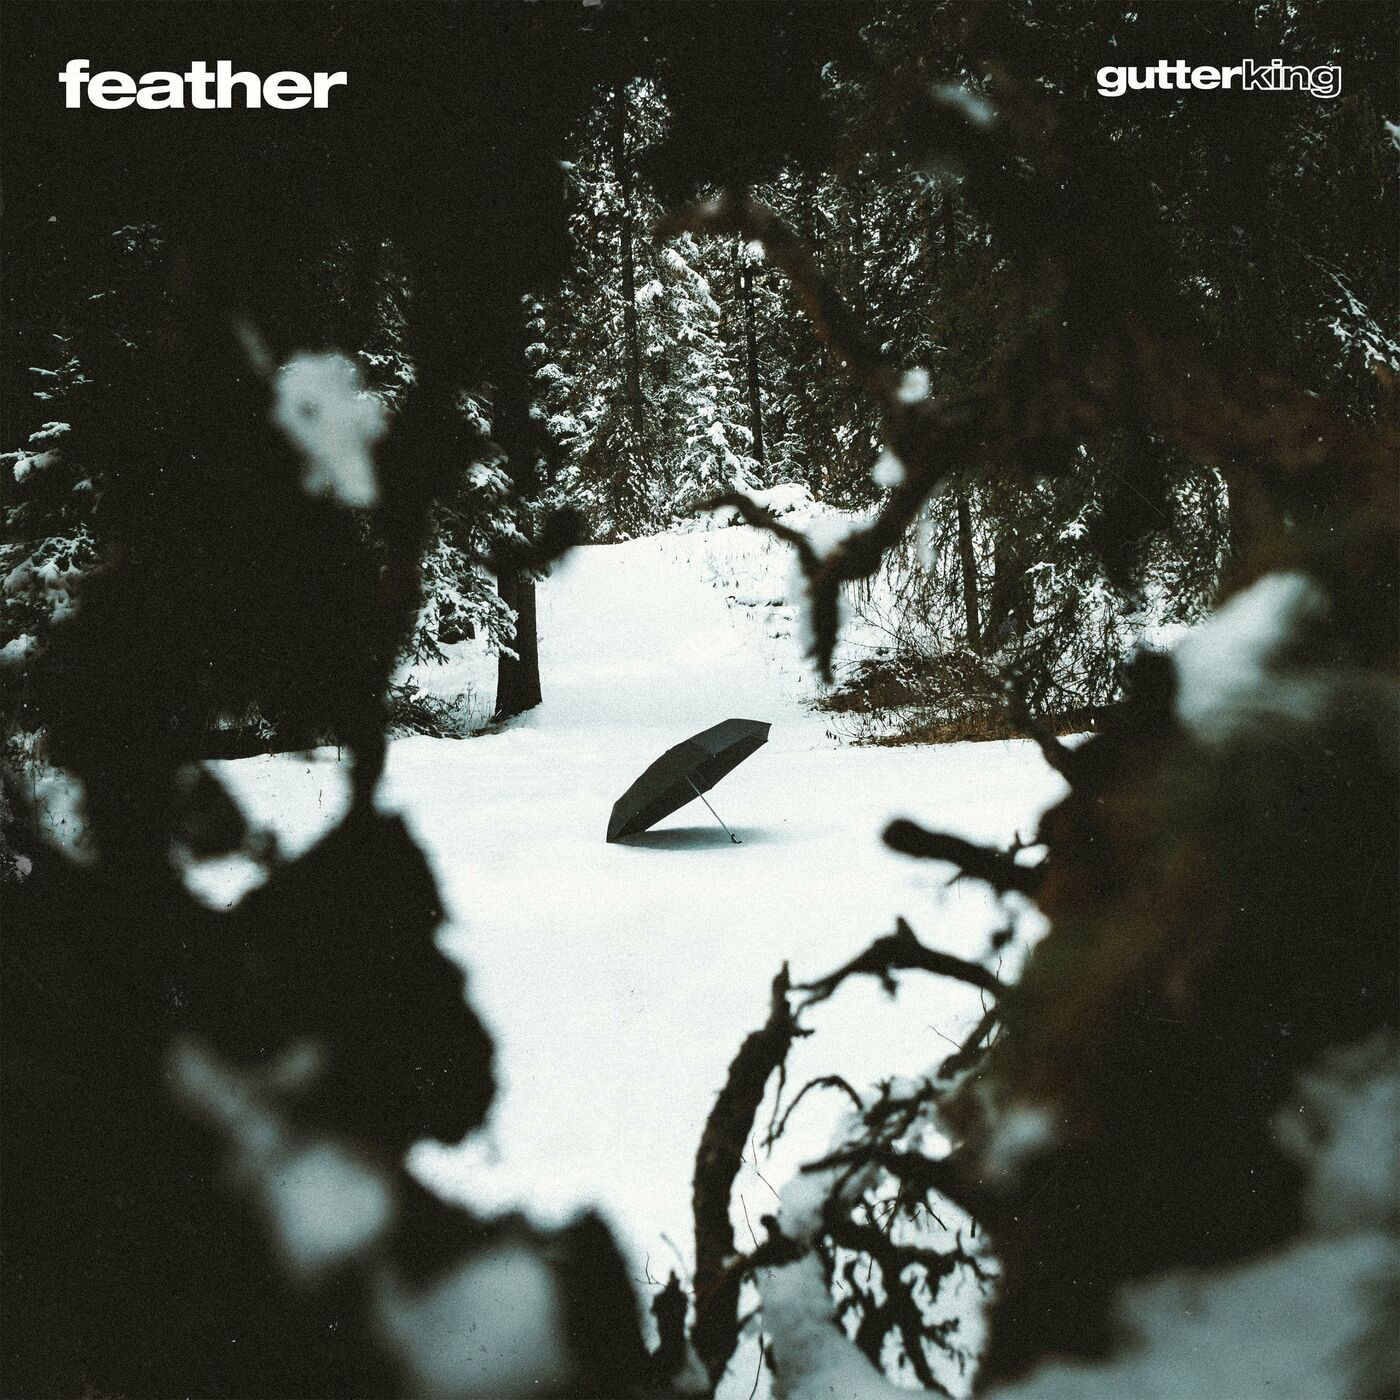 Gutter King - Feather [single] (2020)